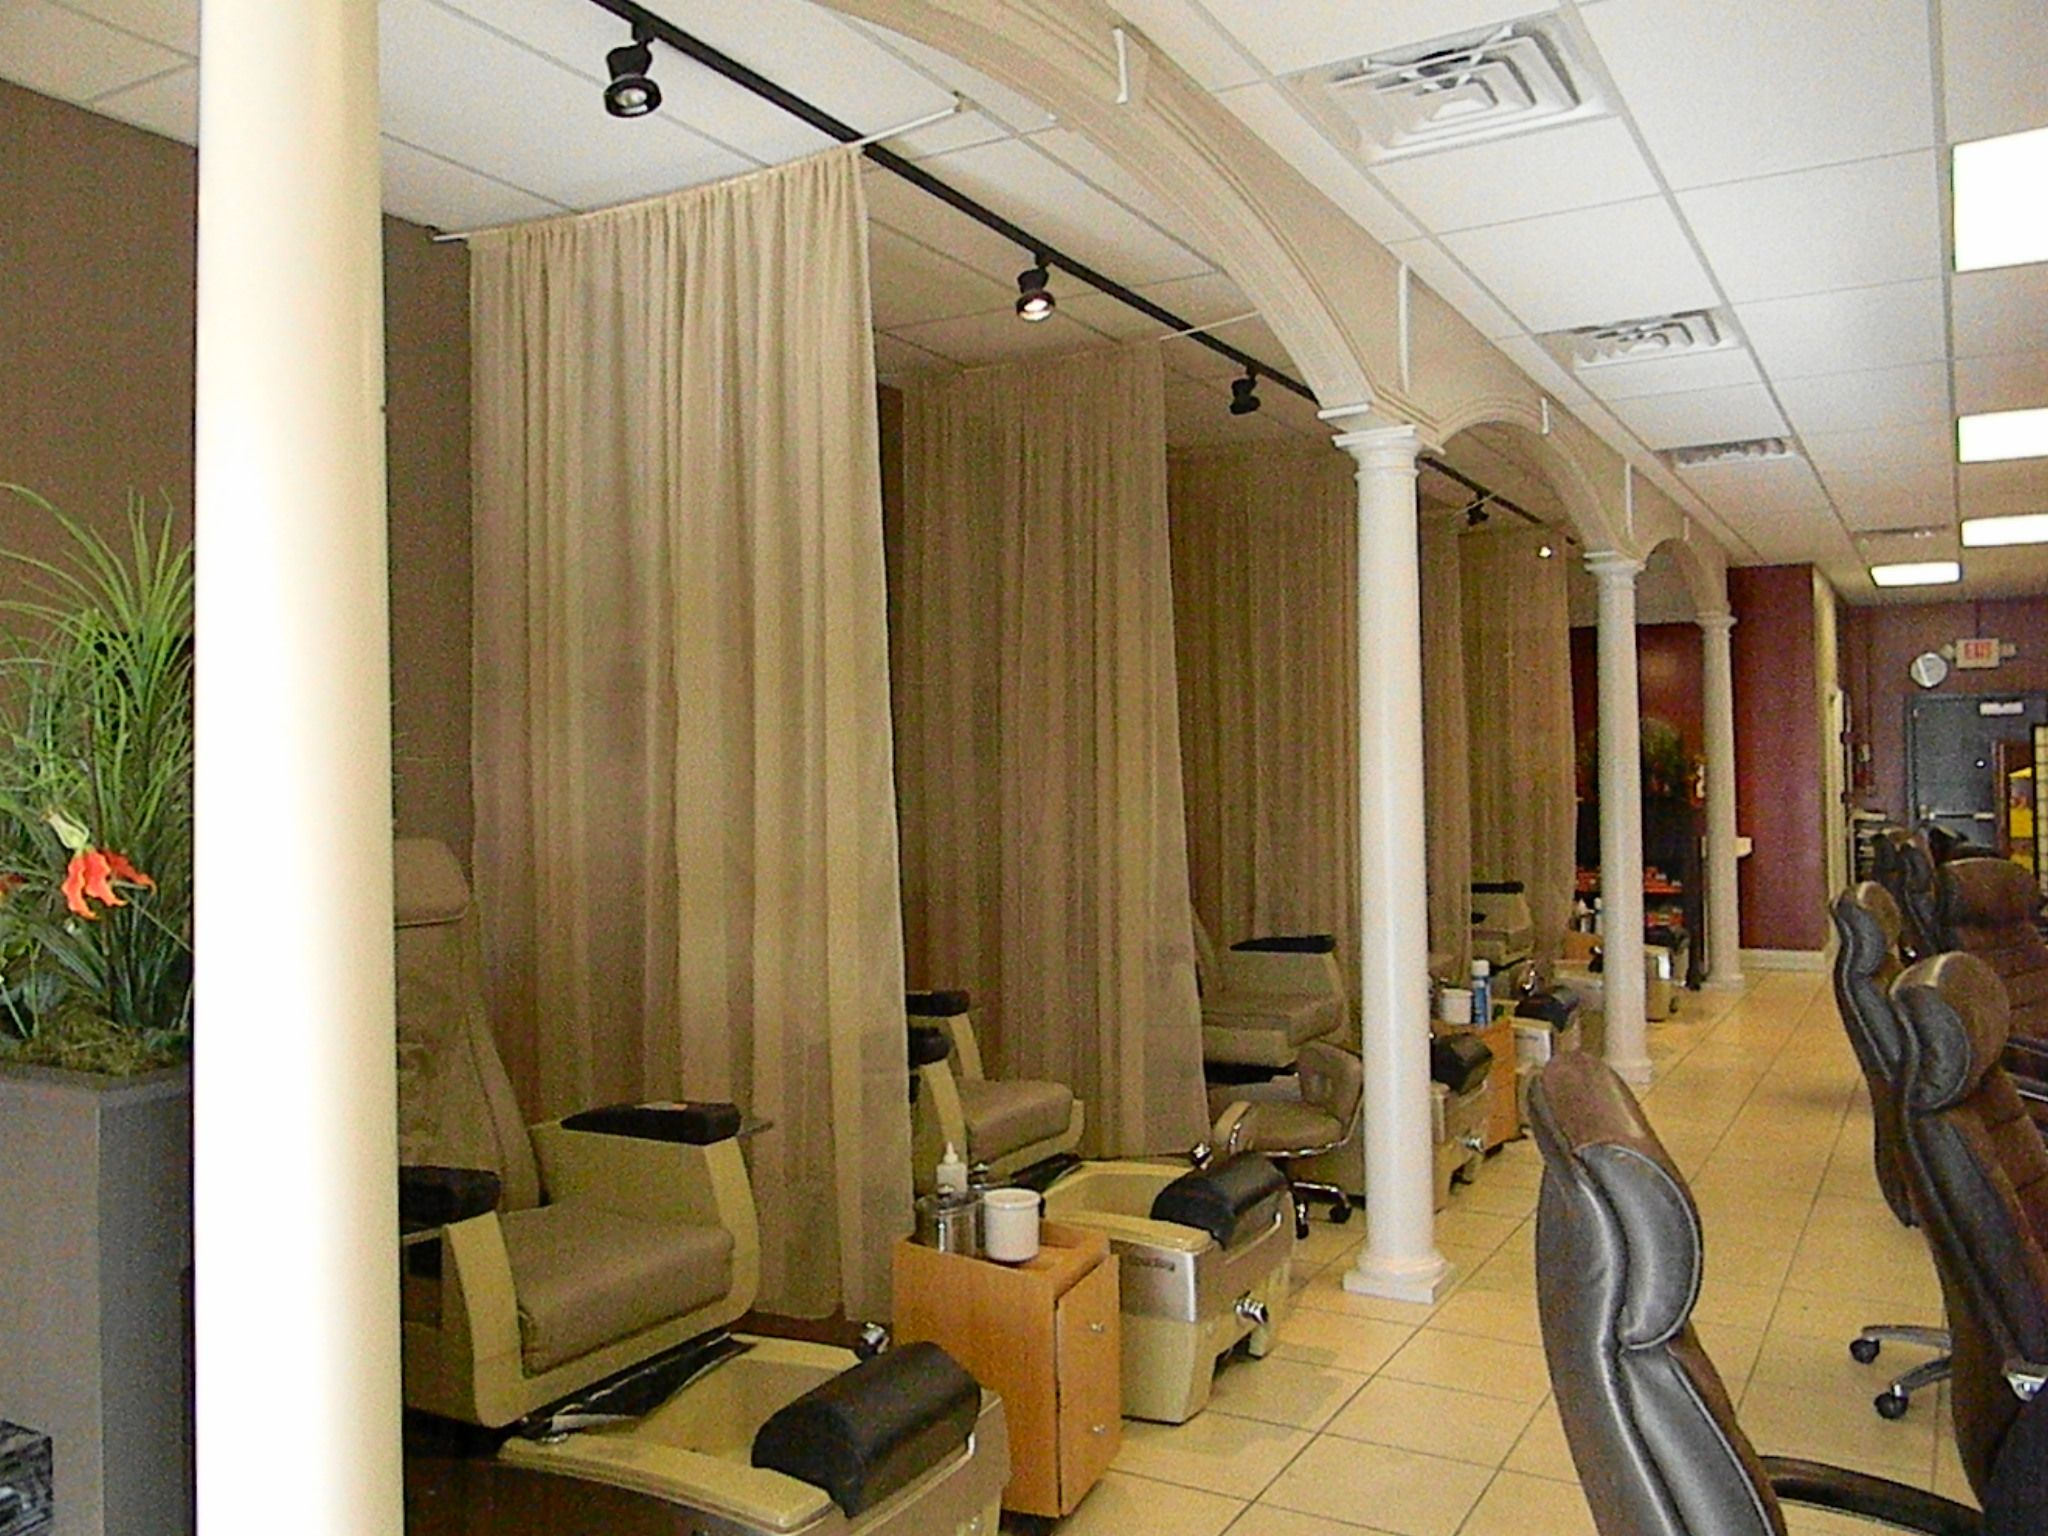 nail salon ideas design nail salon interior design ideas with low budget nail salon interior designs - Nail Salon Design Ideas